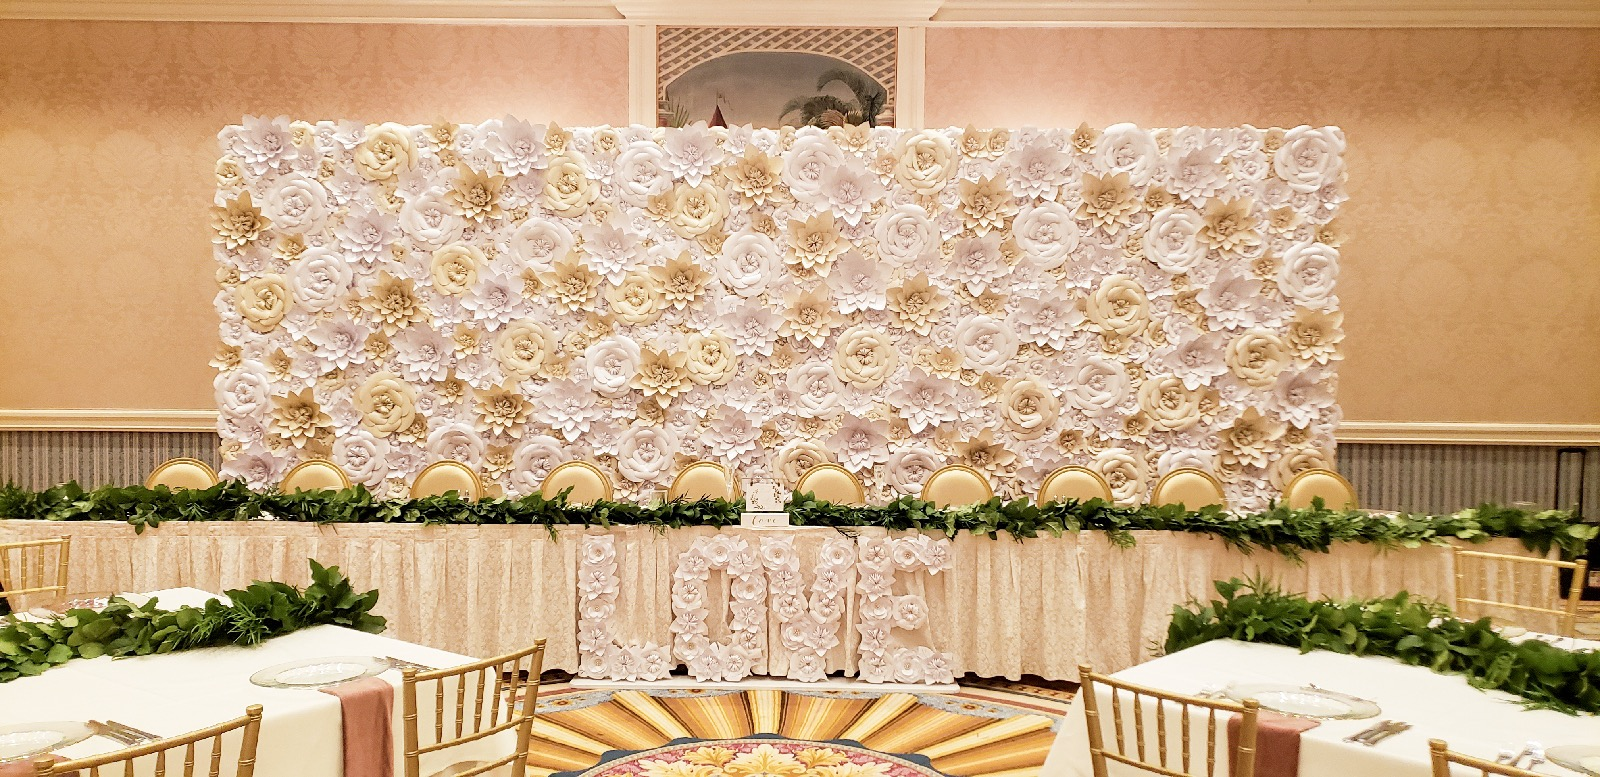 24' long paper flower wall